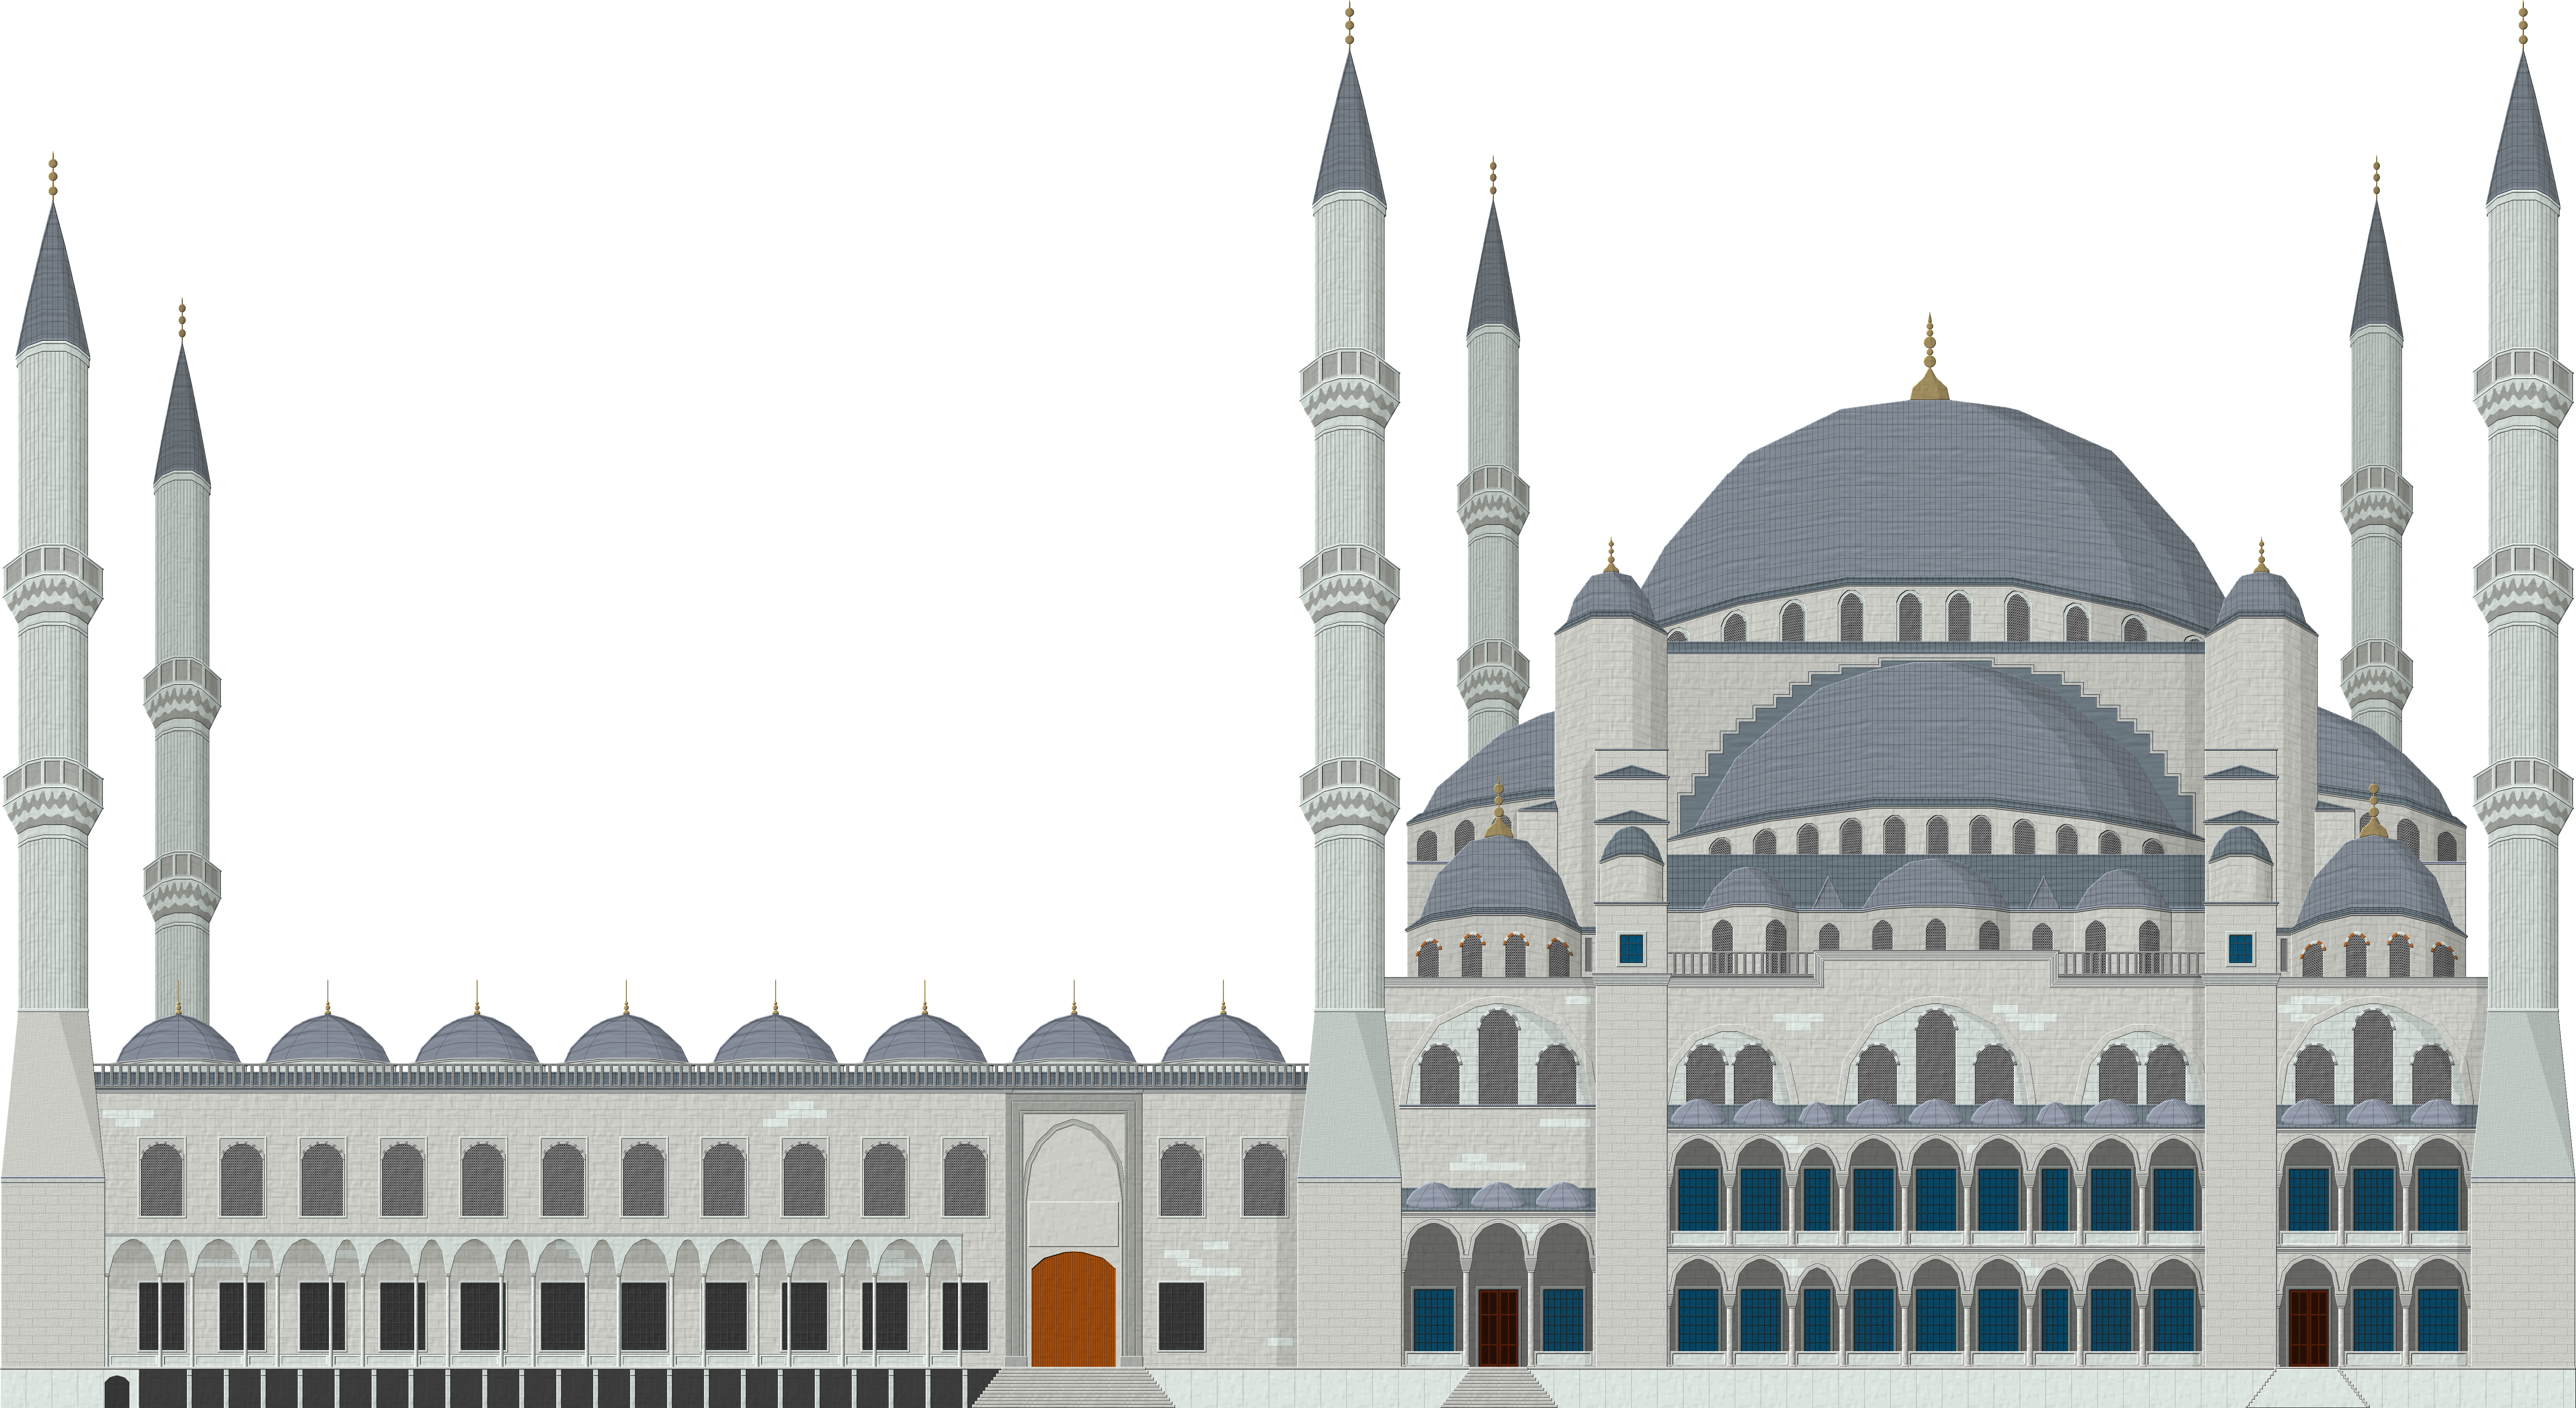 clipart black and white download Blue Mosque by Herbertrocha on DeviantArt